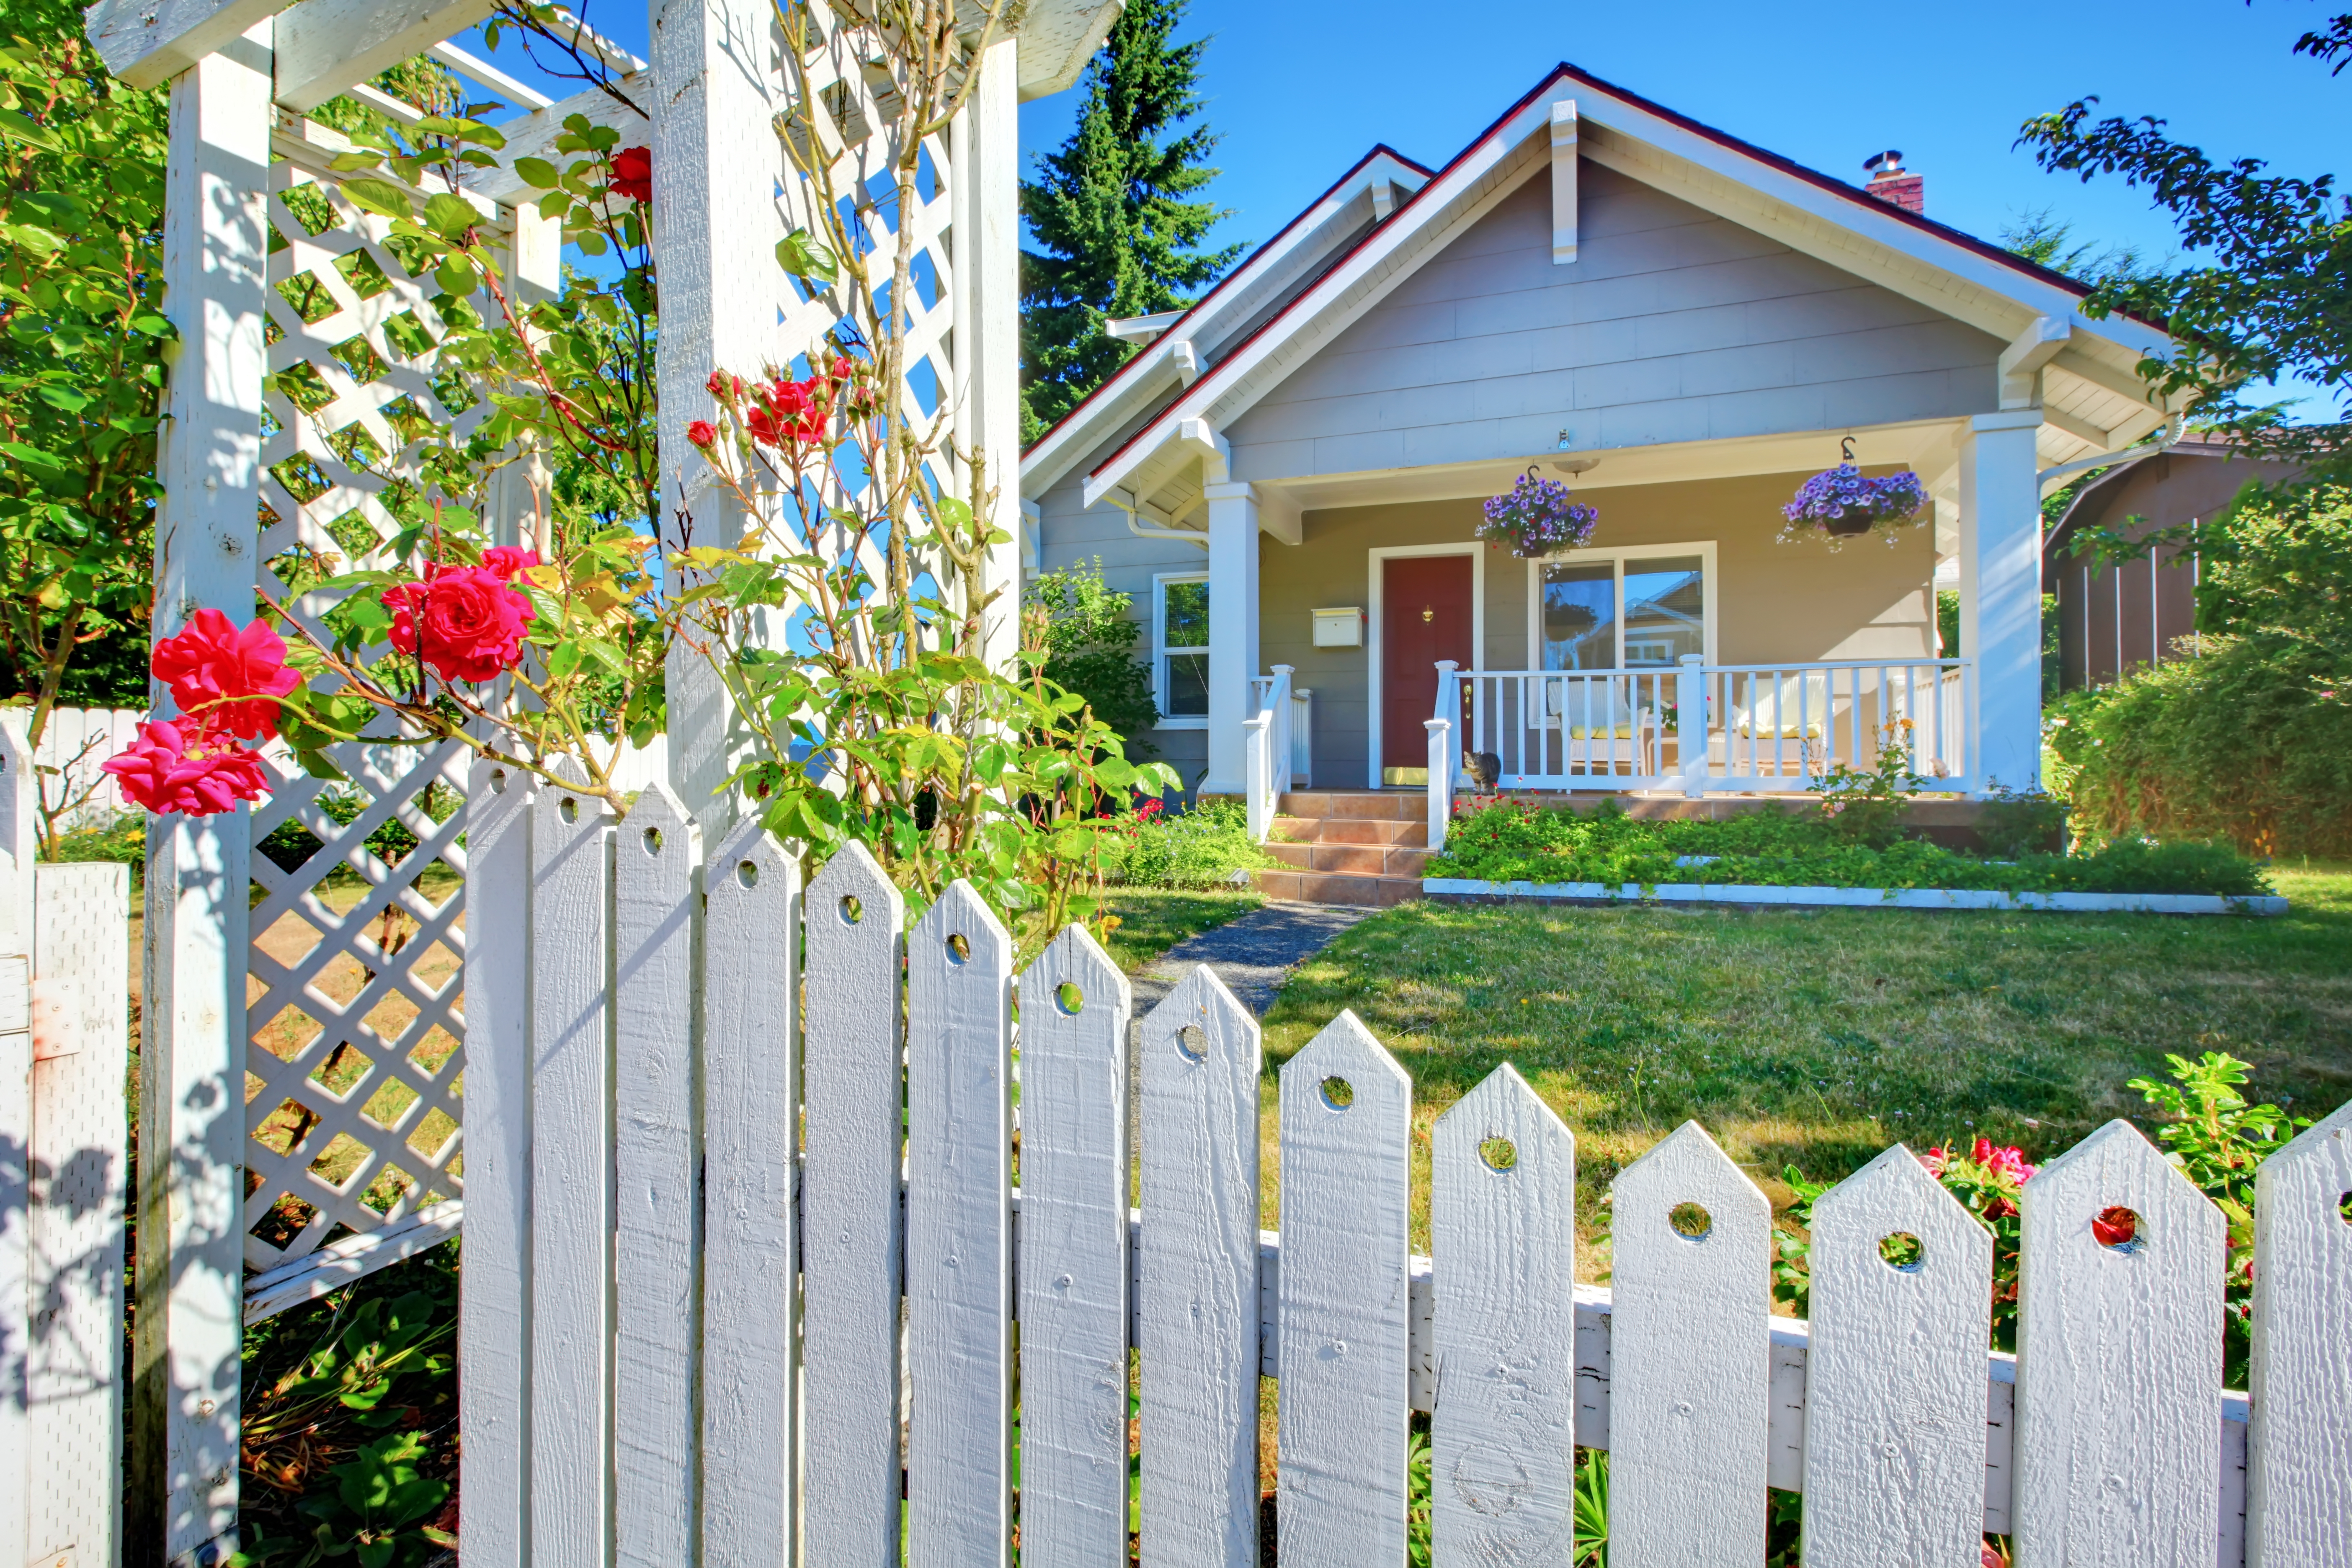 House tucked behind a beautiful white picket fence and green grass and flowers.